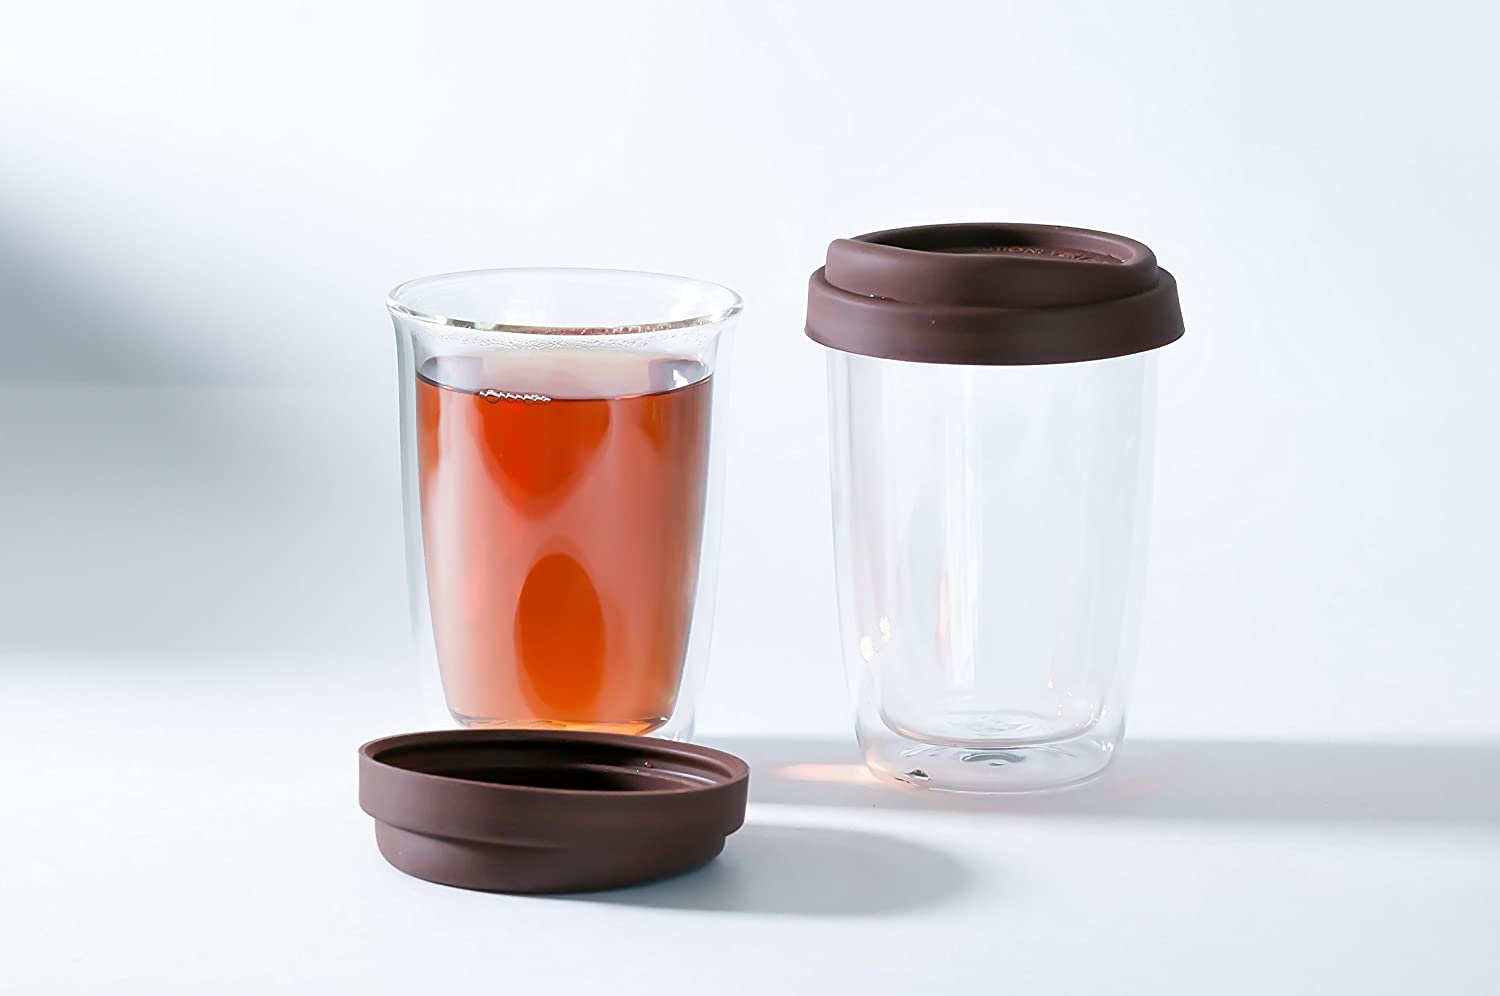 POTIRI Double Walled Insulated Glass Cup With Silicone Lid - 12 Ounces each (Set of Two) - Perfect for Coffee or Tea